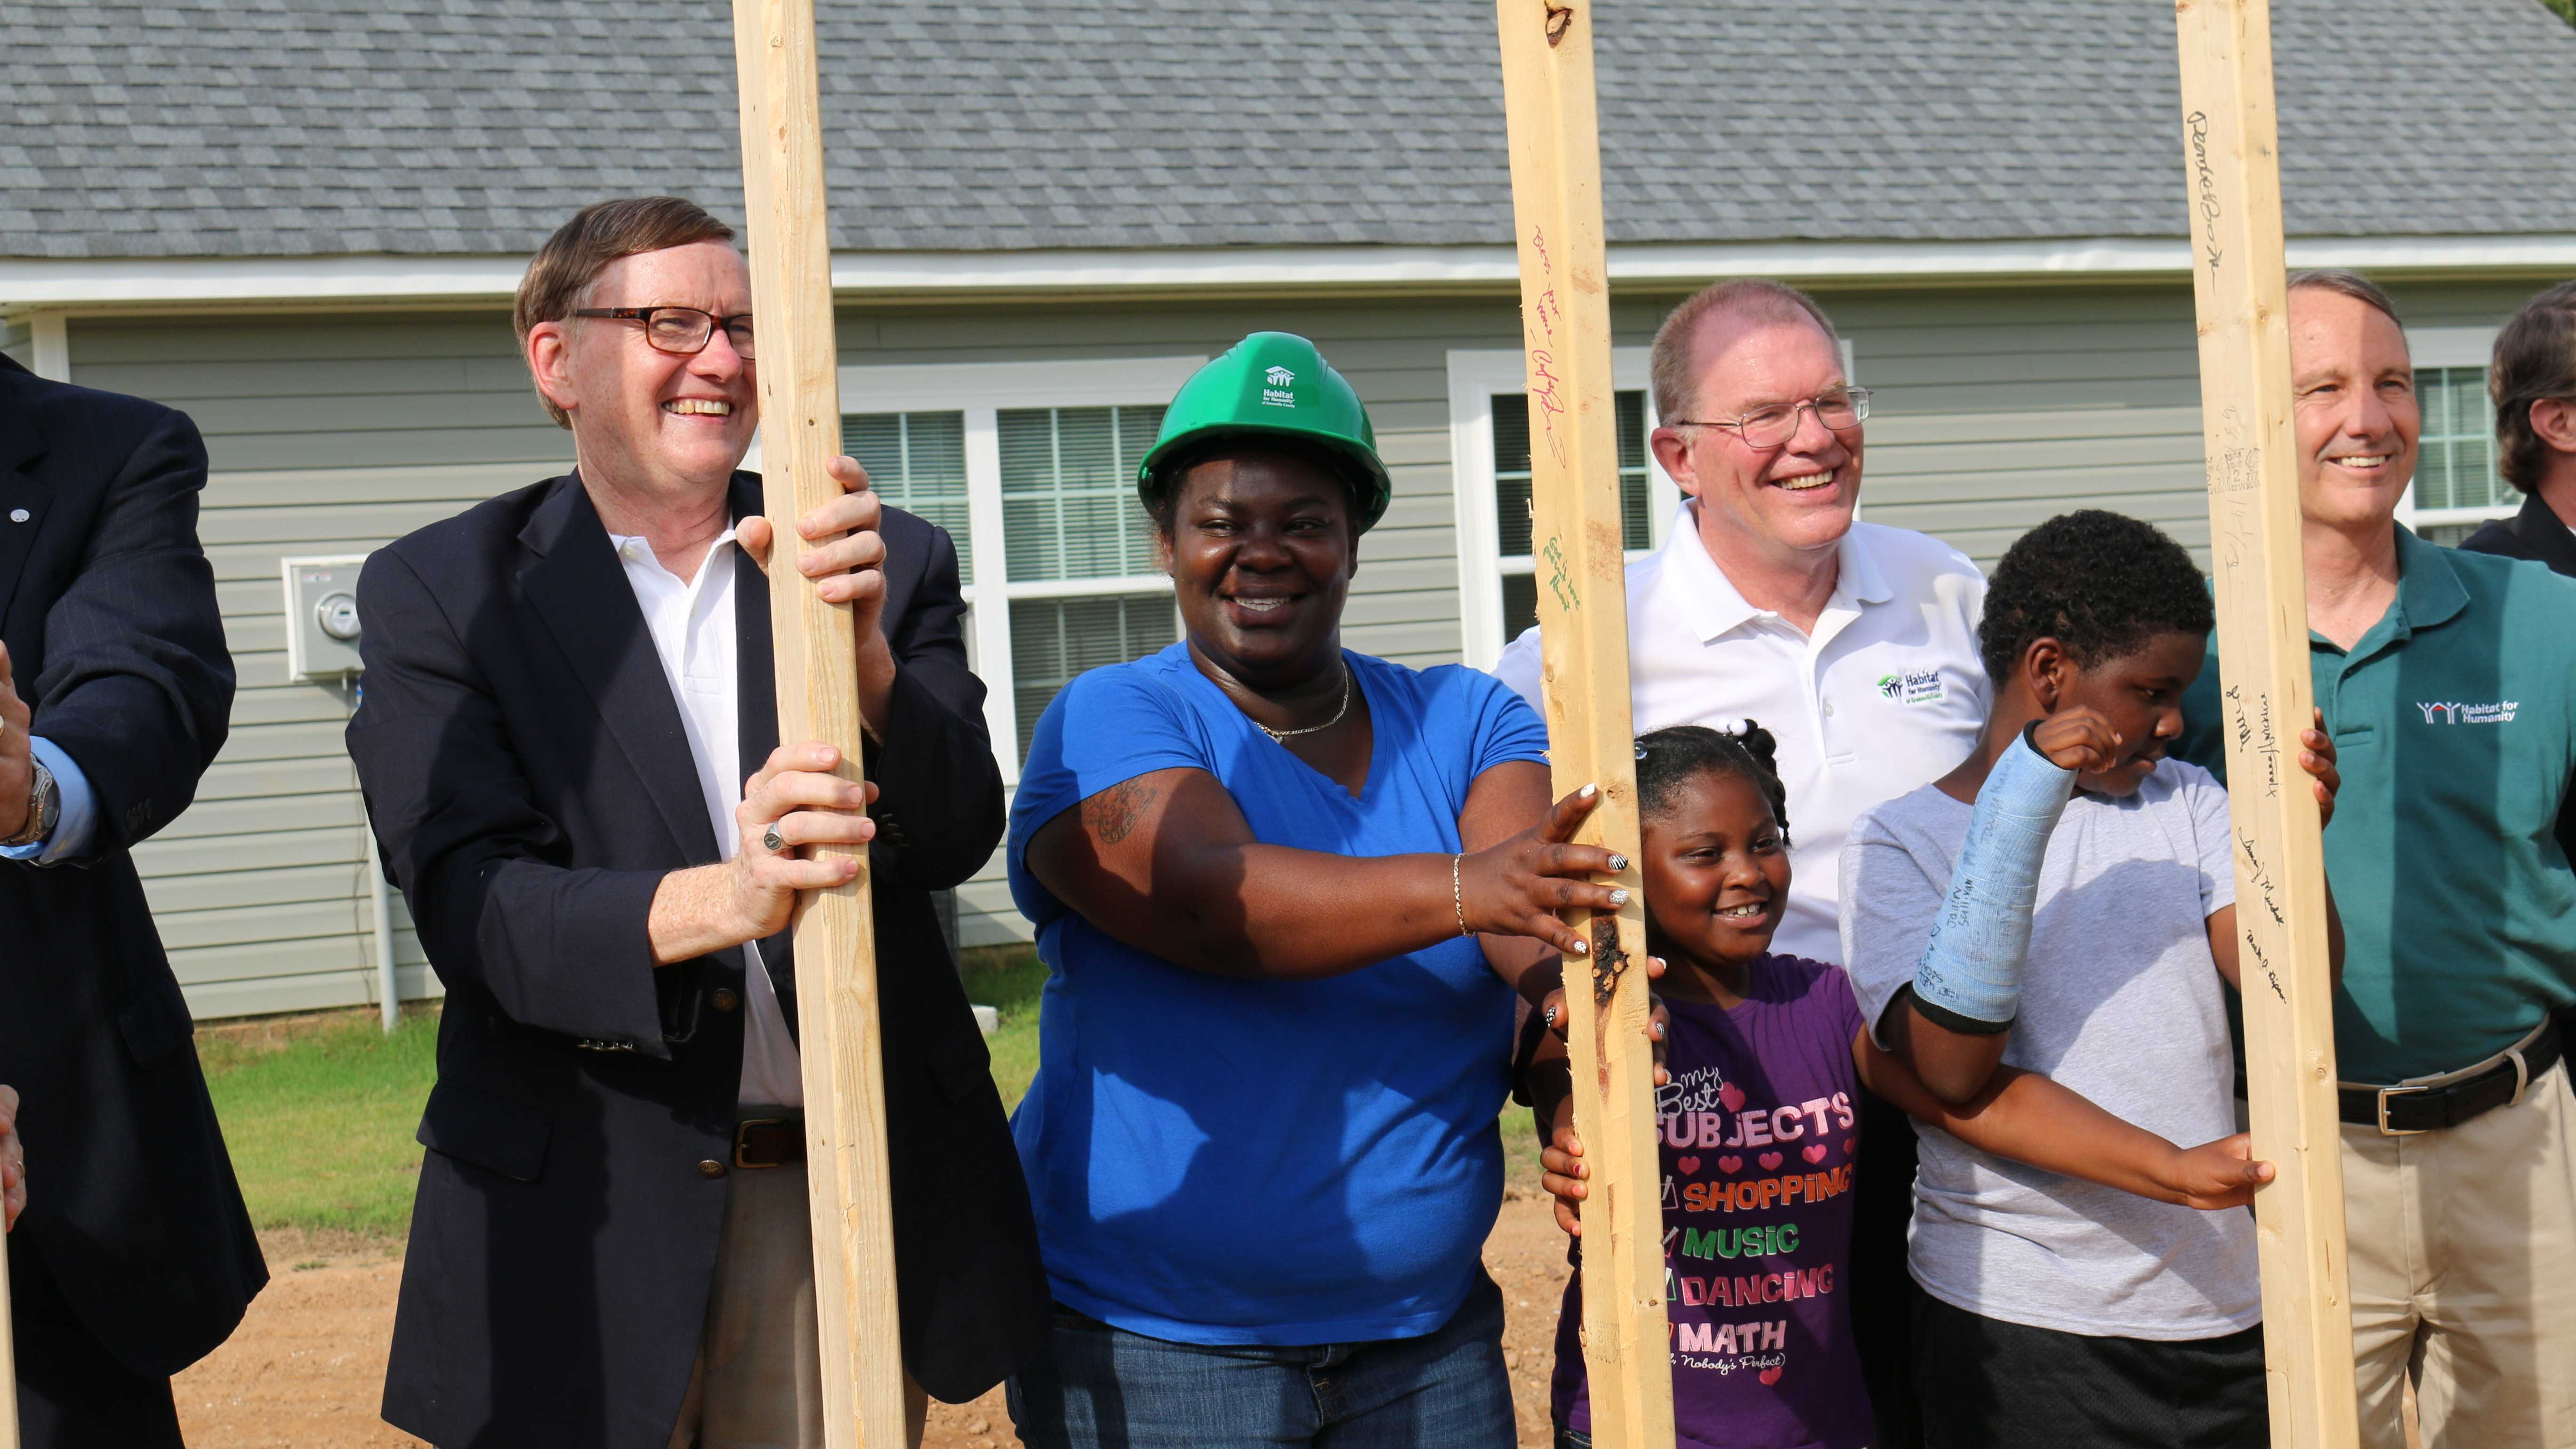 Homeowner Stacey Greene attends the wall-raising ceremony for her Habitat for Humanity house.